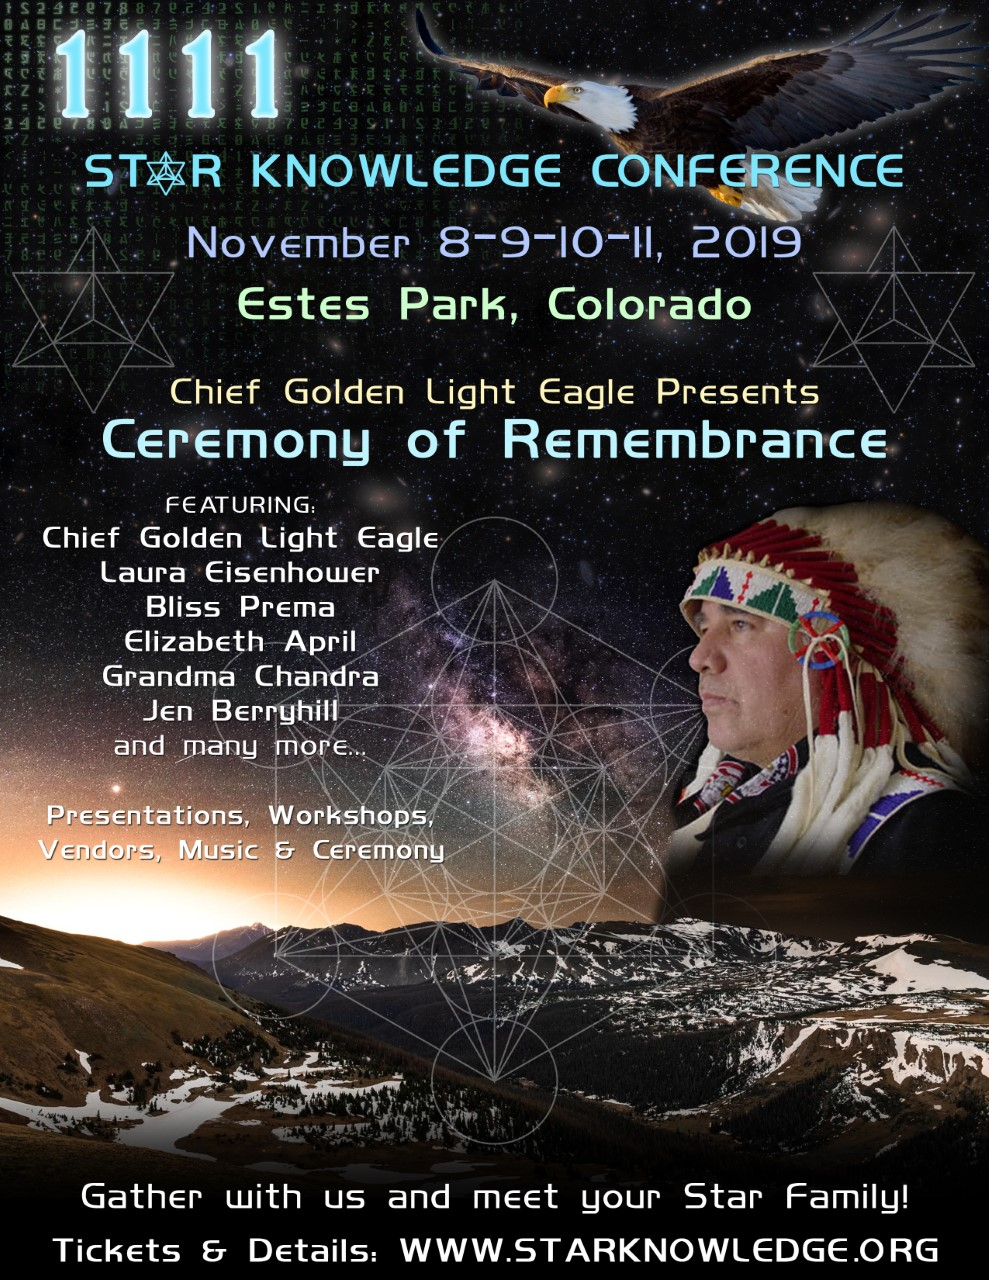 11 11 Star Knowledge Conference 2019